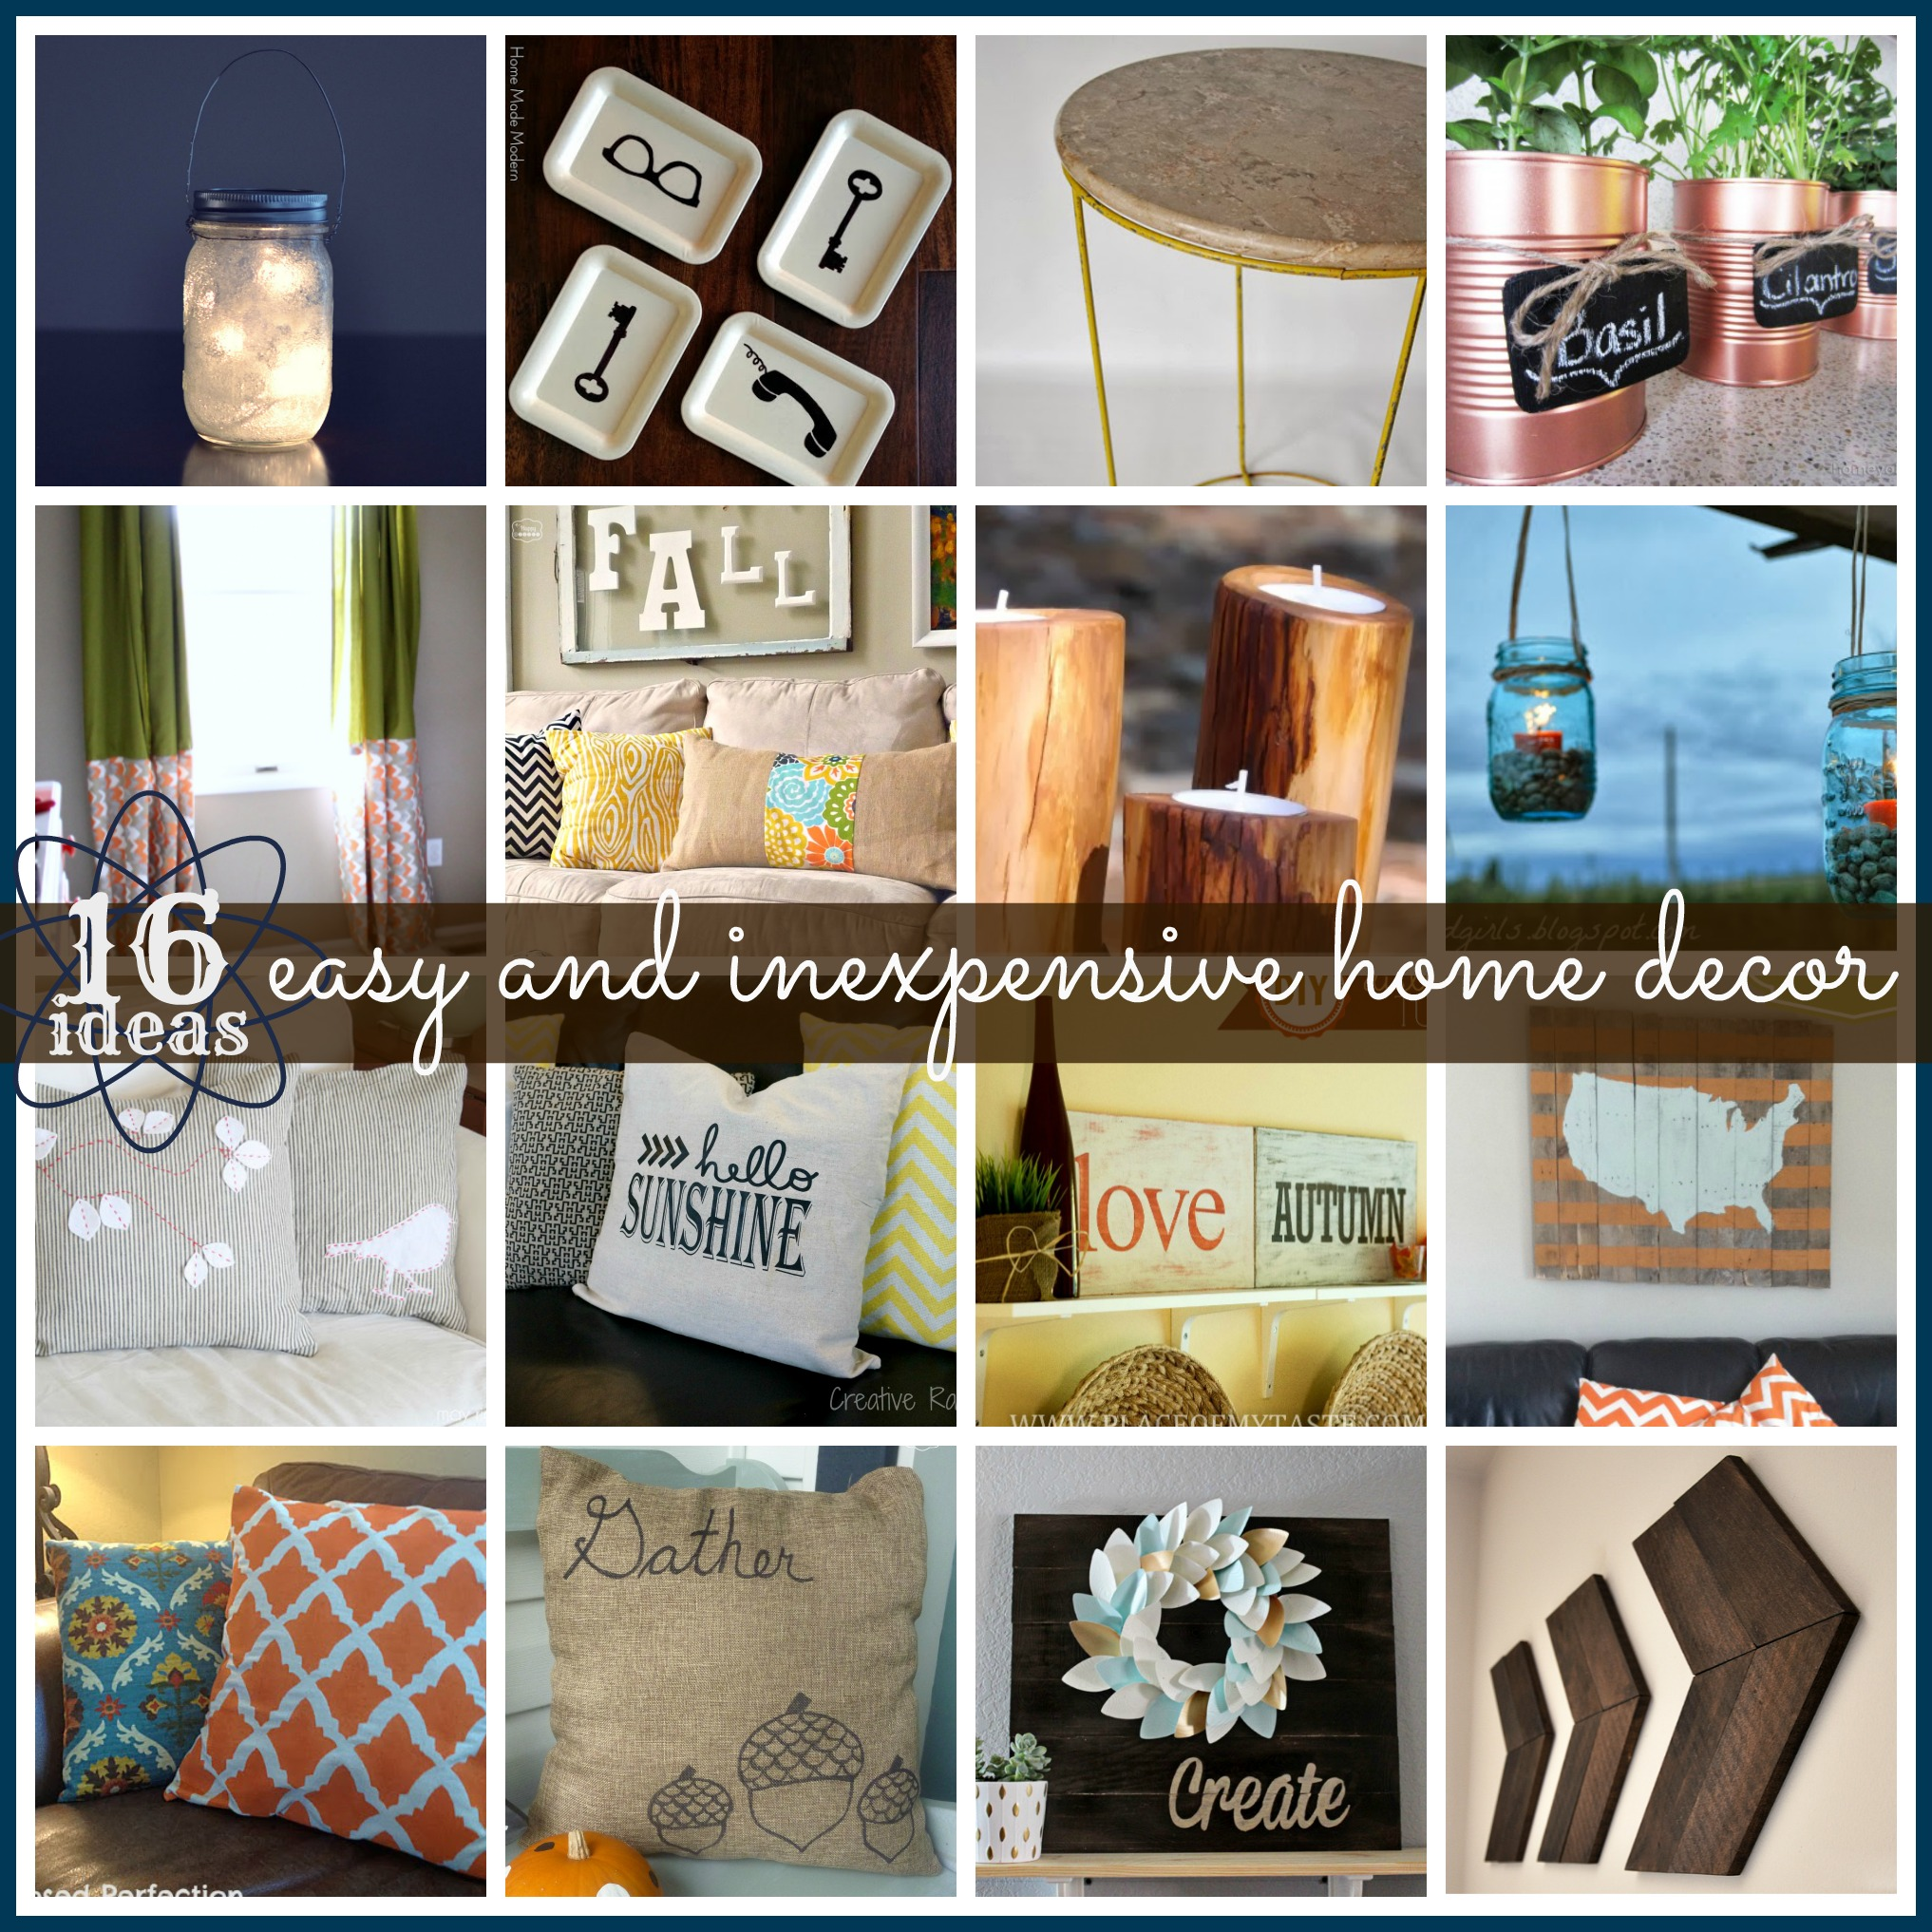 Home Design Ideas Cheap: Link Party Features [16 Inexpensive & Easy Home Decor